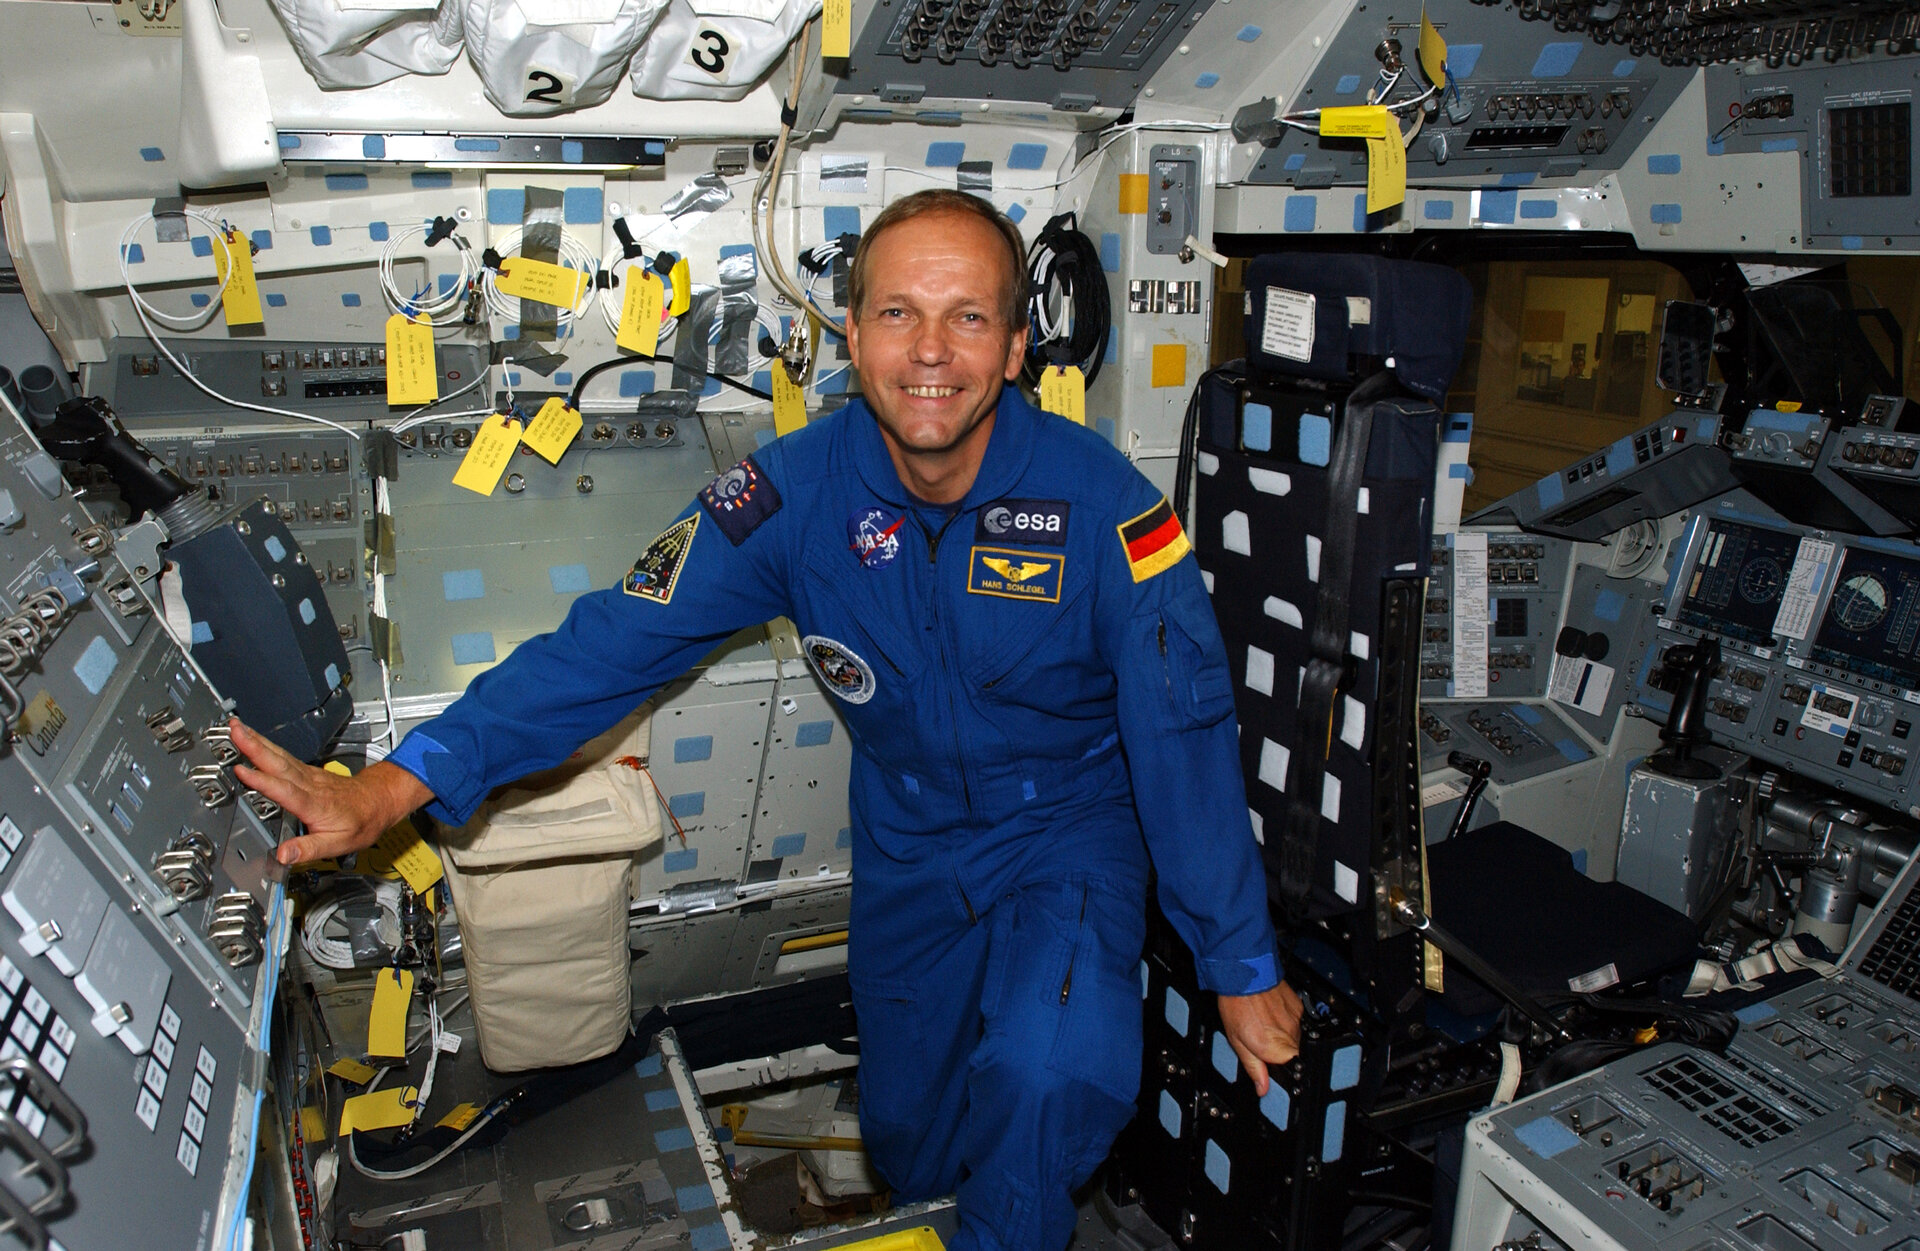 ESA astronaut Hans Schlegel during training in Houston